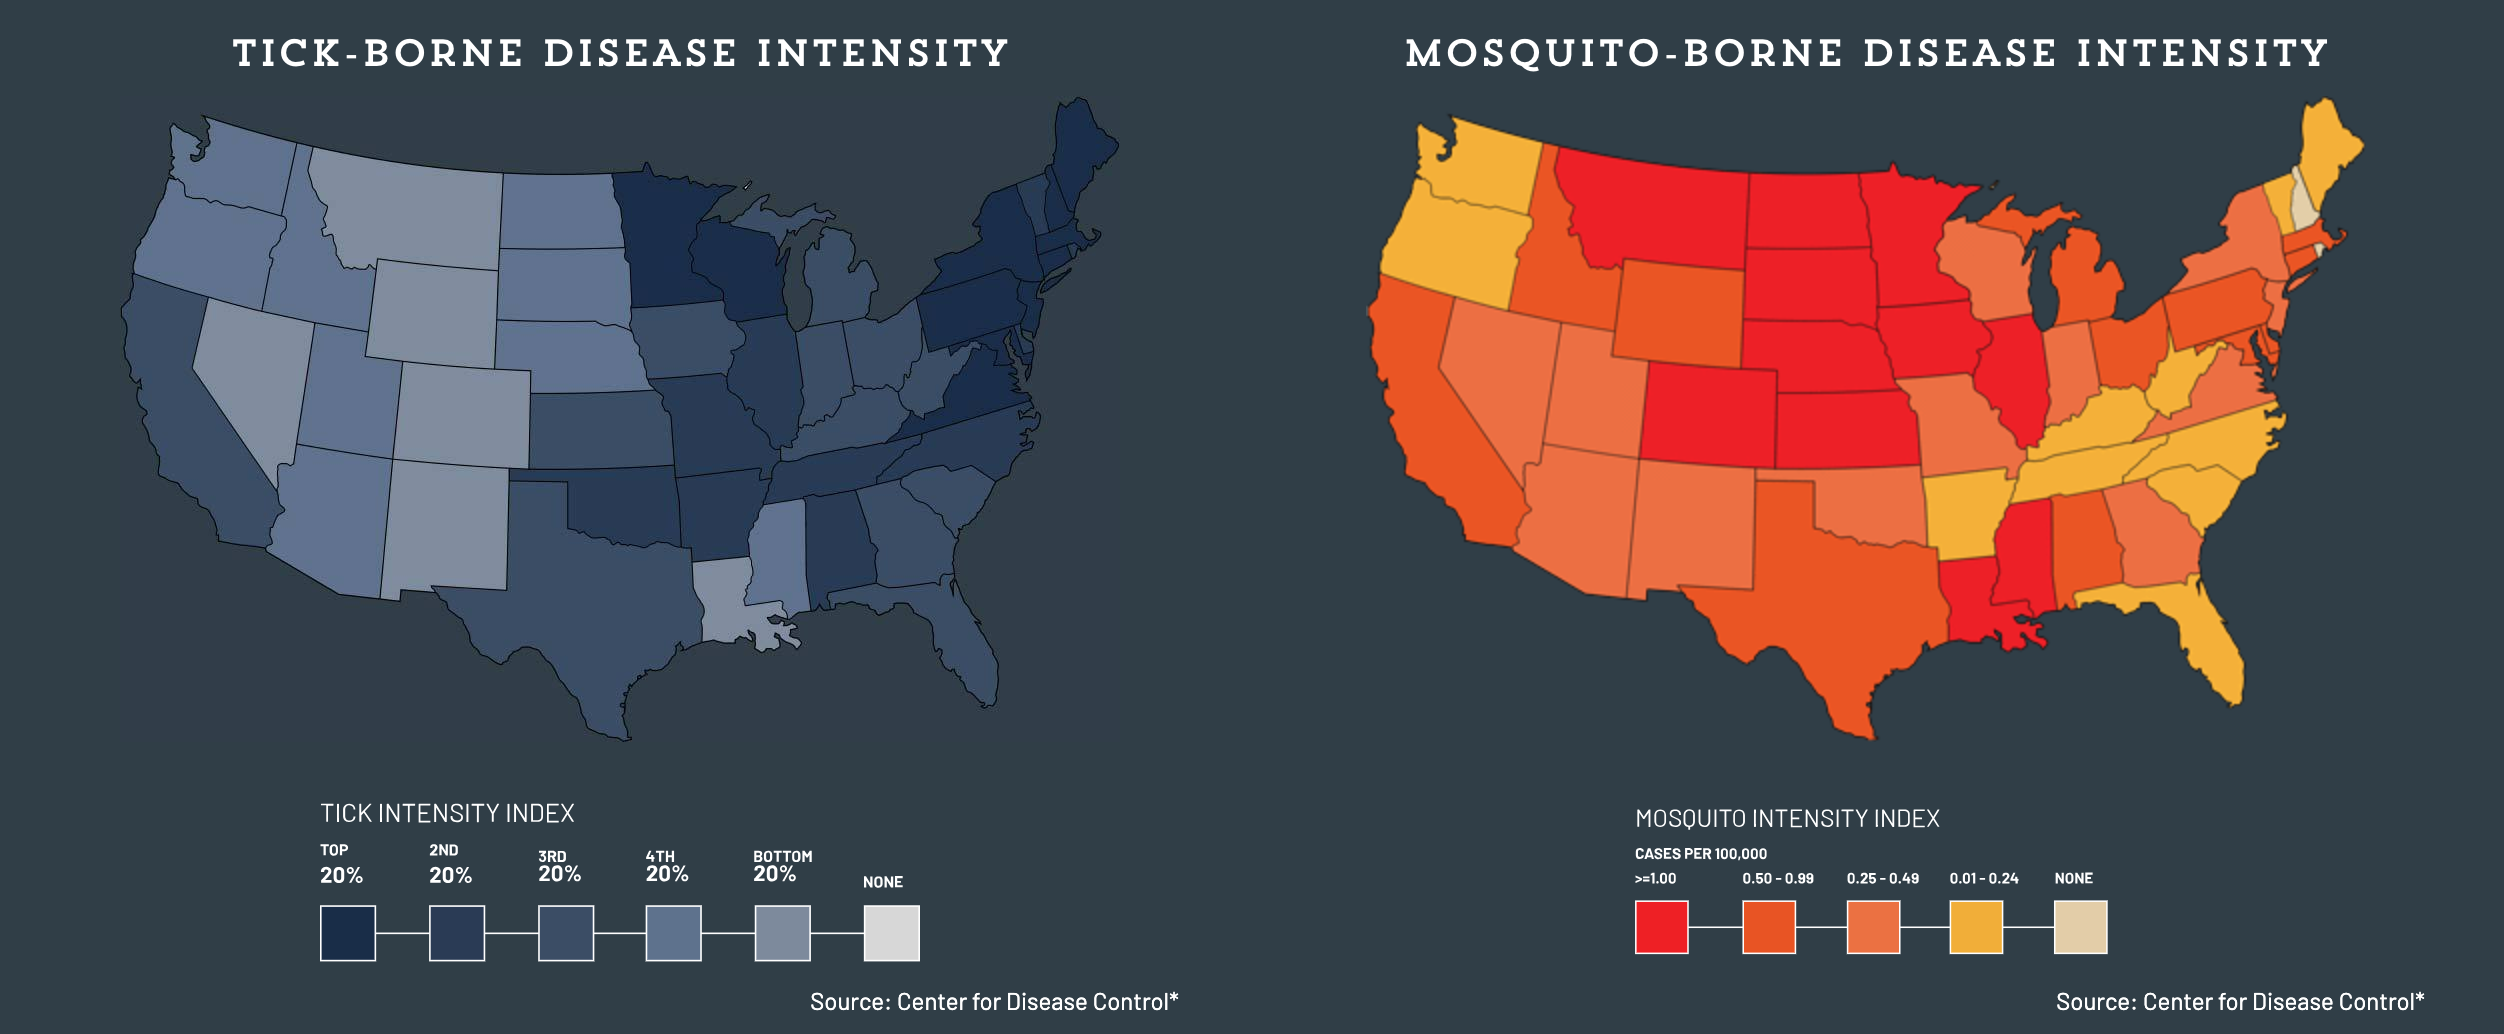 tick and mosquito intensity maps for vector borne diseases